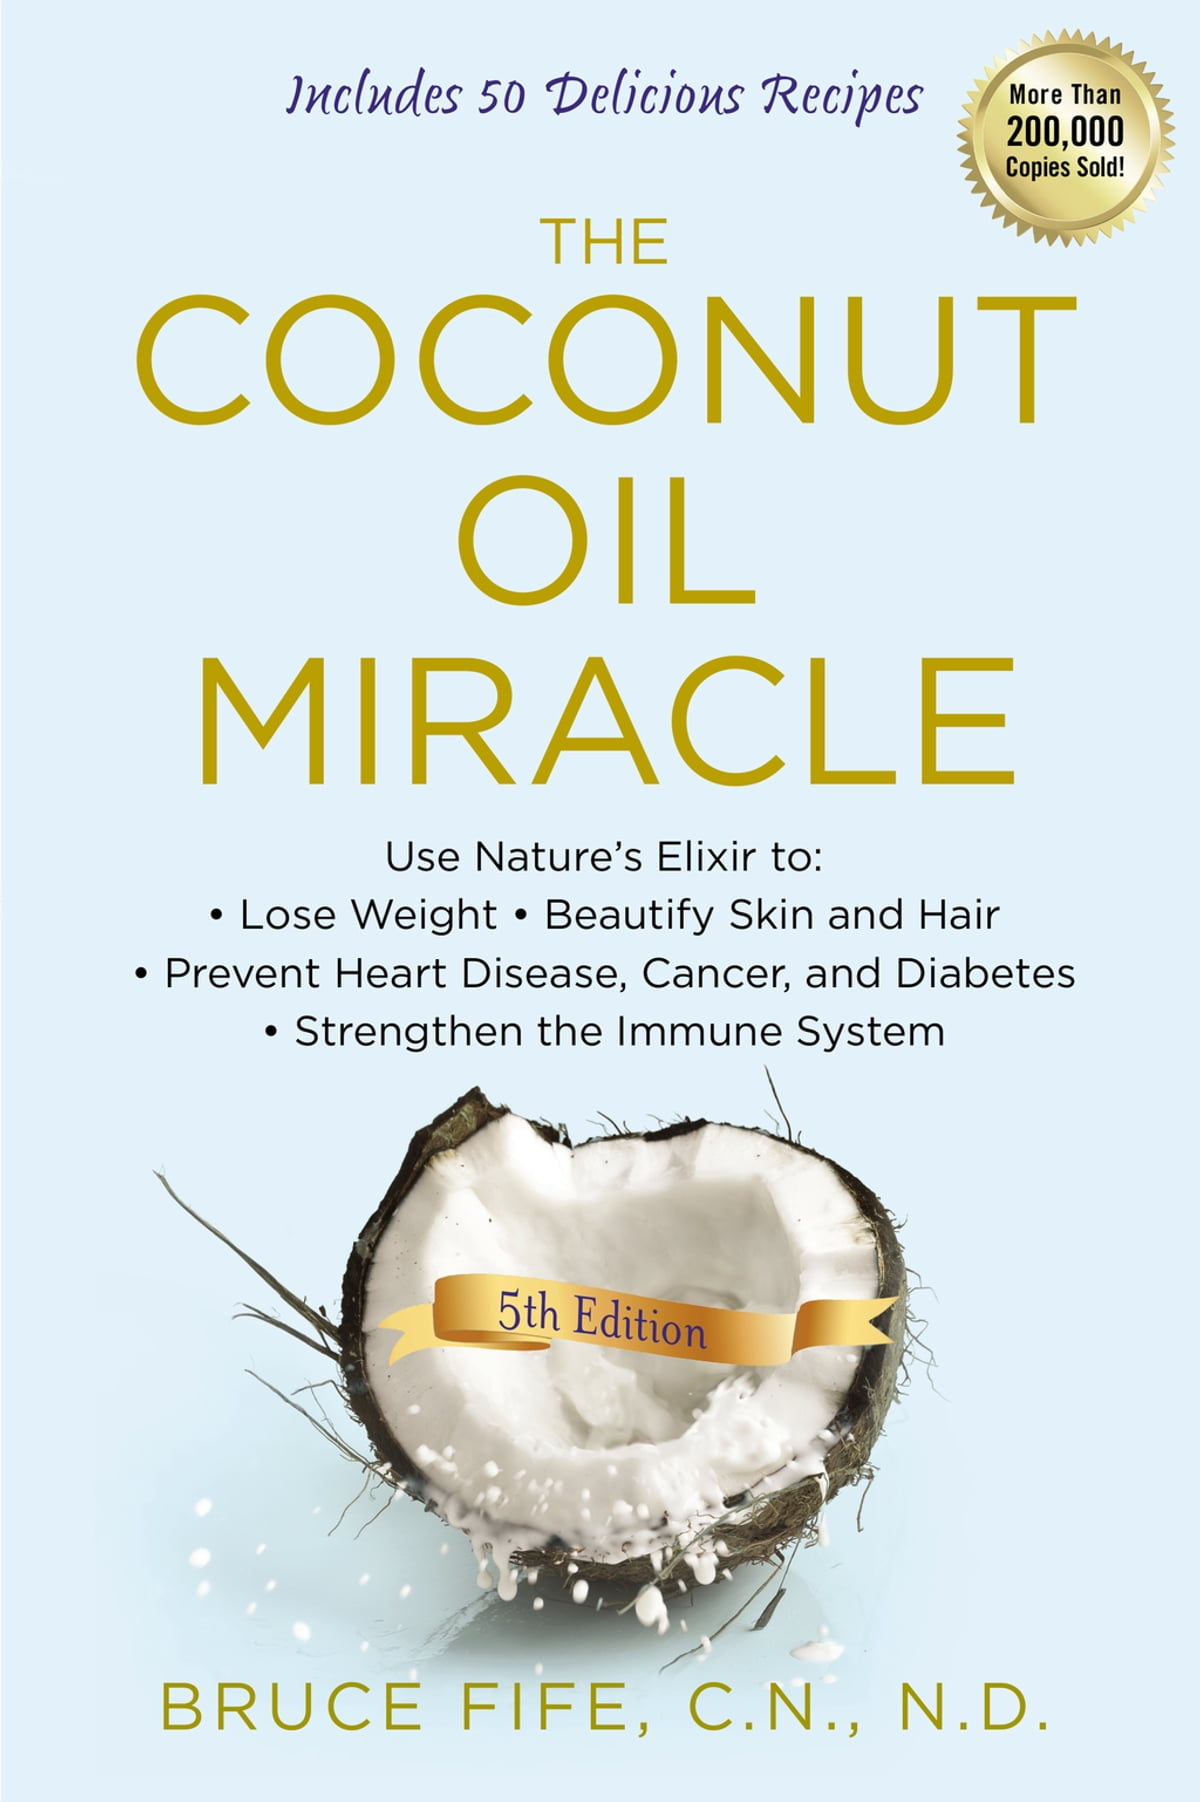 The Coconut Oil Miracle, 5th Edition Ebook By Bruce Fife  9781101662748   Rakuten Kobo